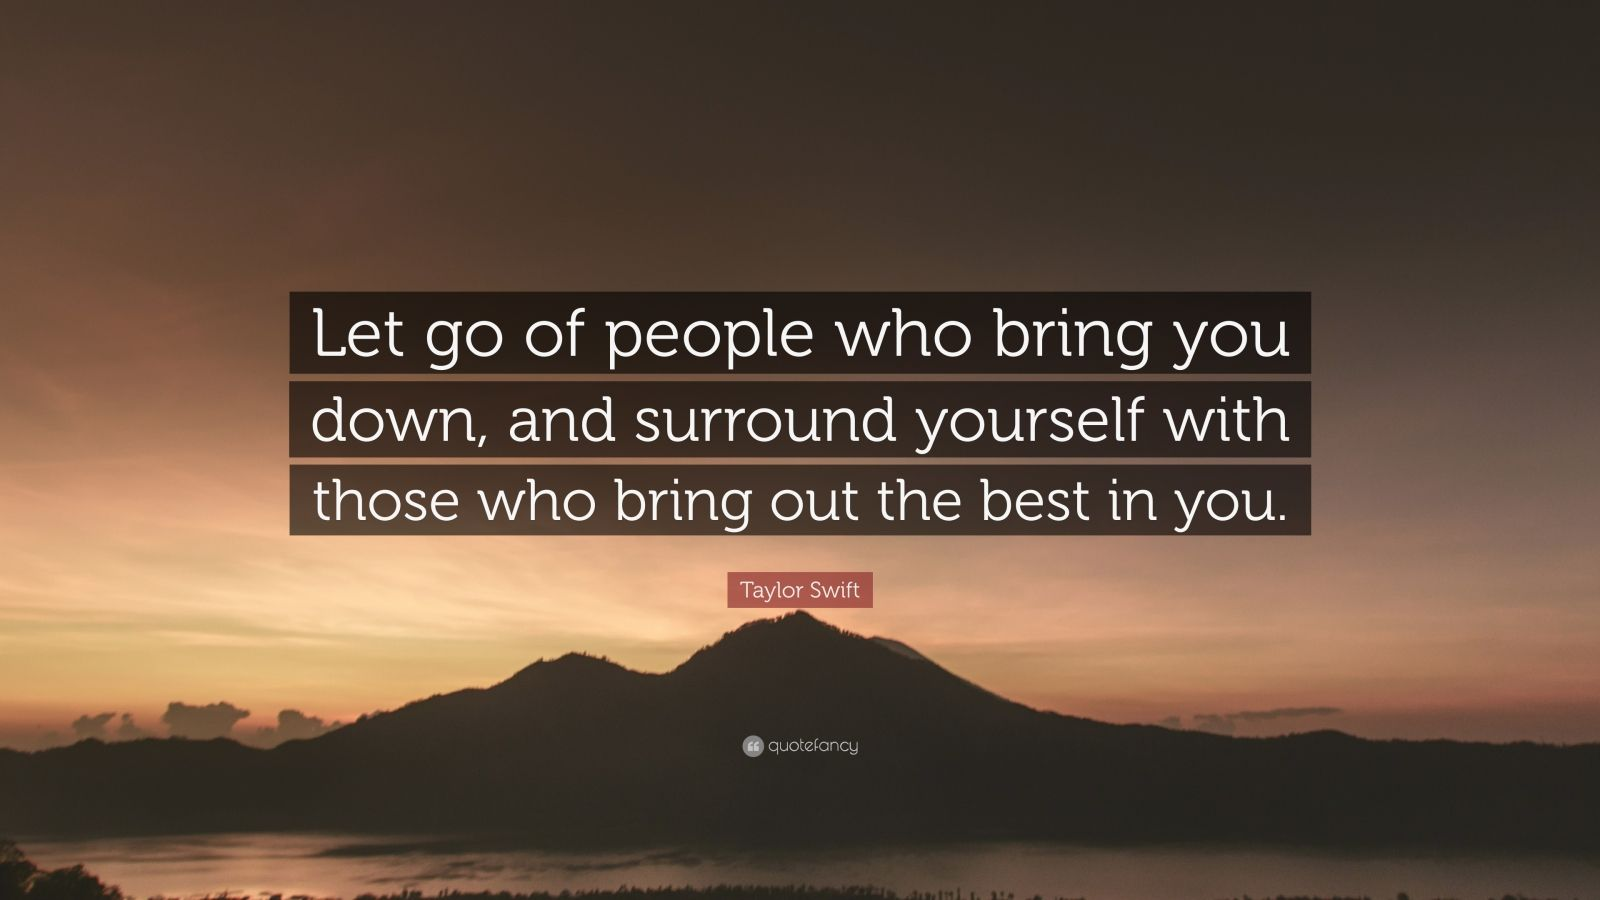 """Taylor Swift Quote: """"Let go of people who bring you down, and surround yourself with those who bring out the best in you."""""""